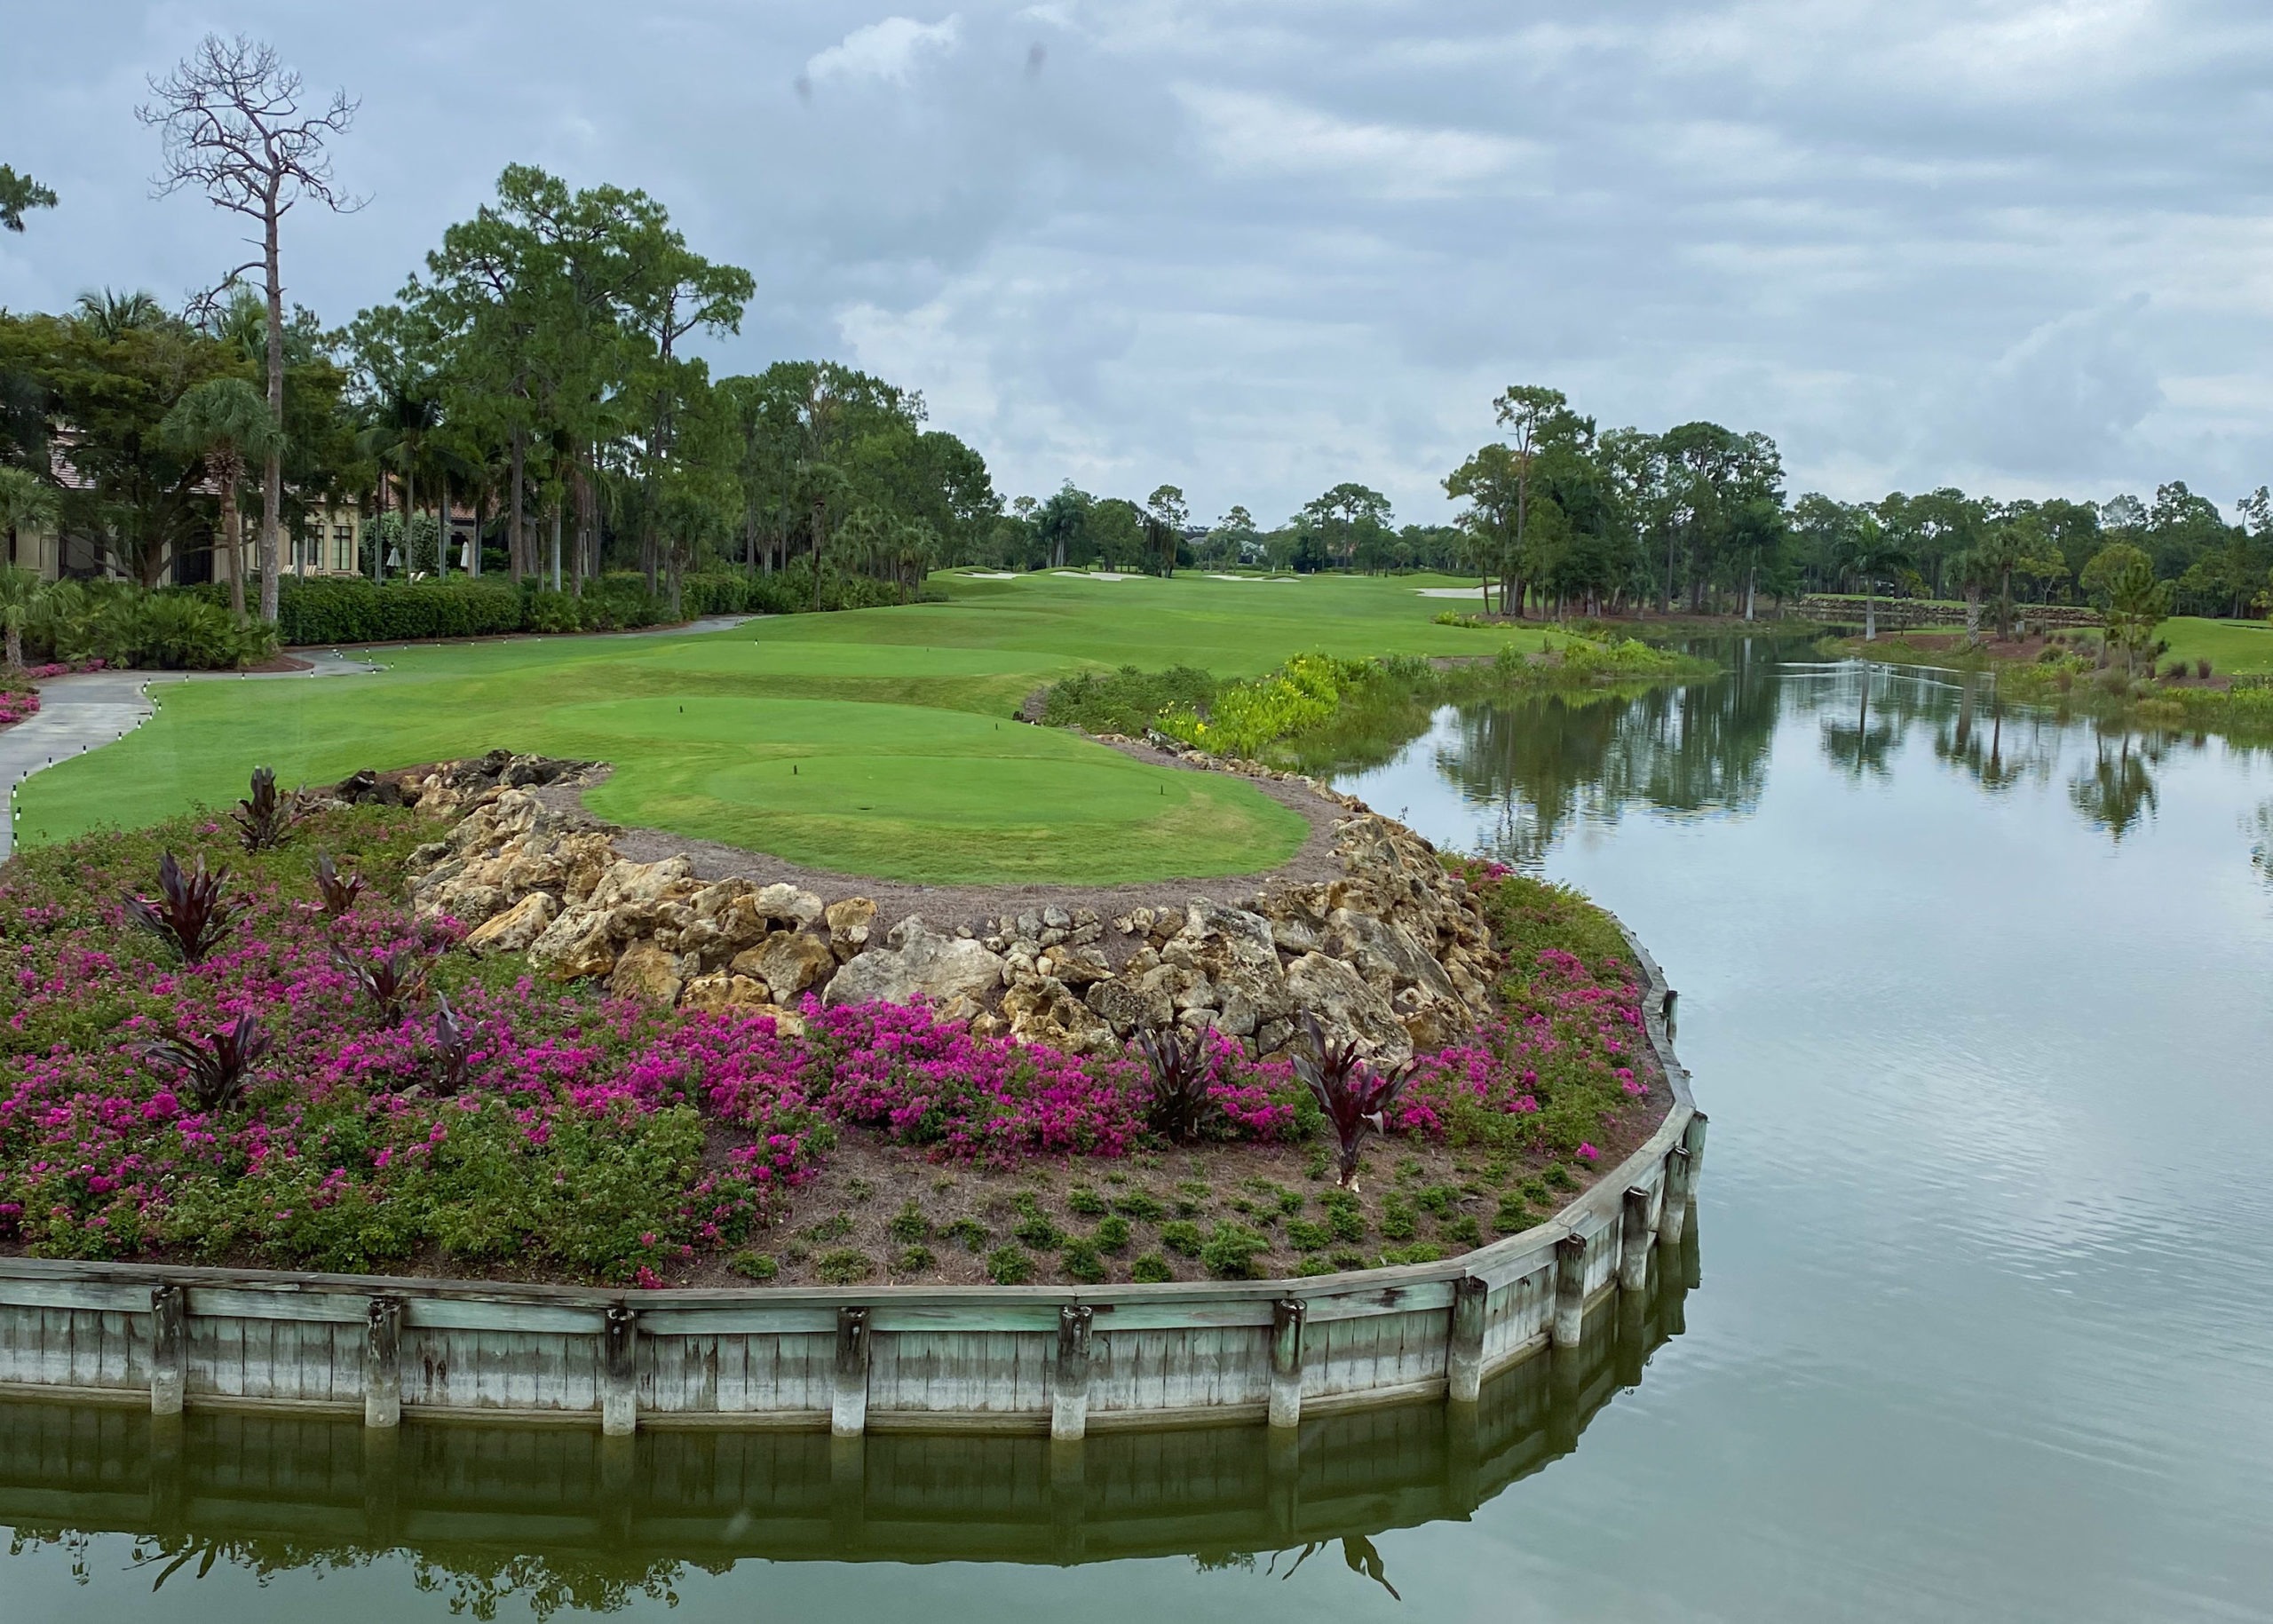 view of a golf course, water and flowers